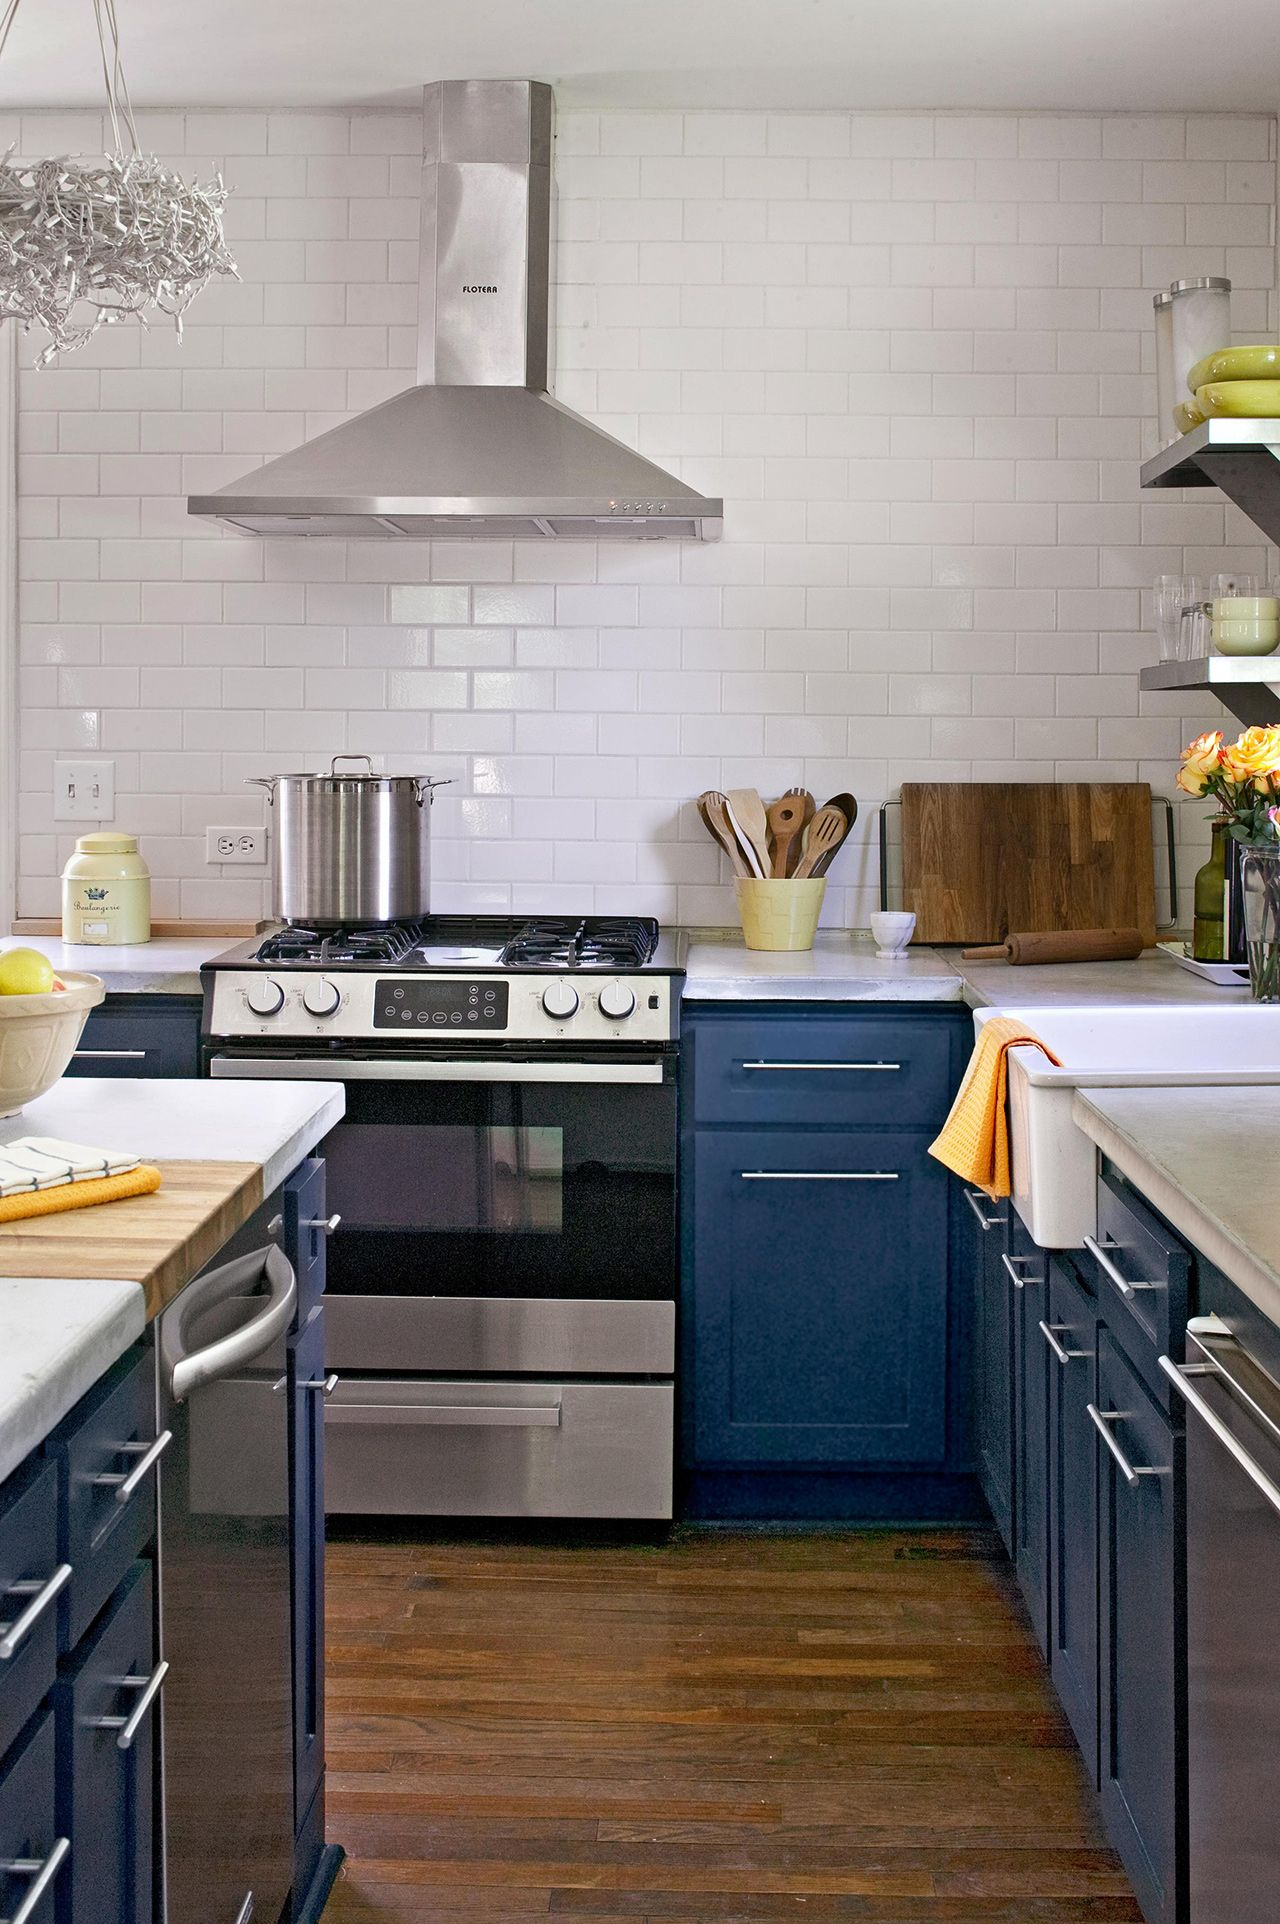 25 Winning Kitchen Color Schemes For A Look You Ll Love Forever In 2020 Kitchen Colour Schemes Kitchen Remodel Kitchen Cabinet Color Schemes